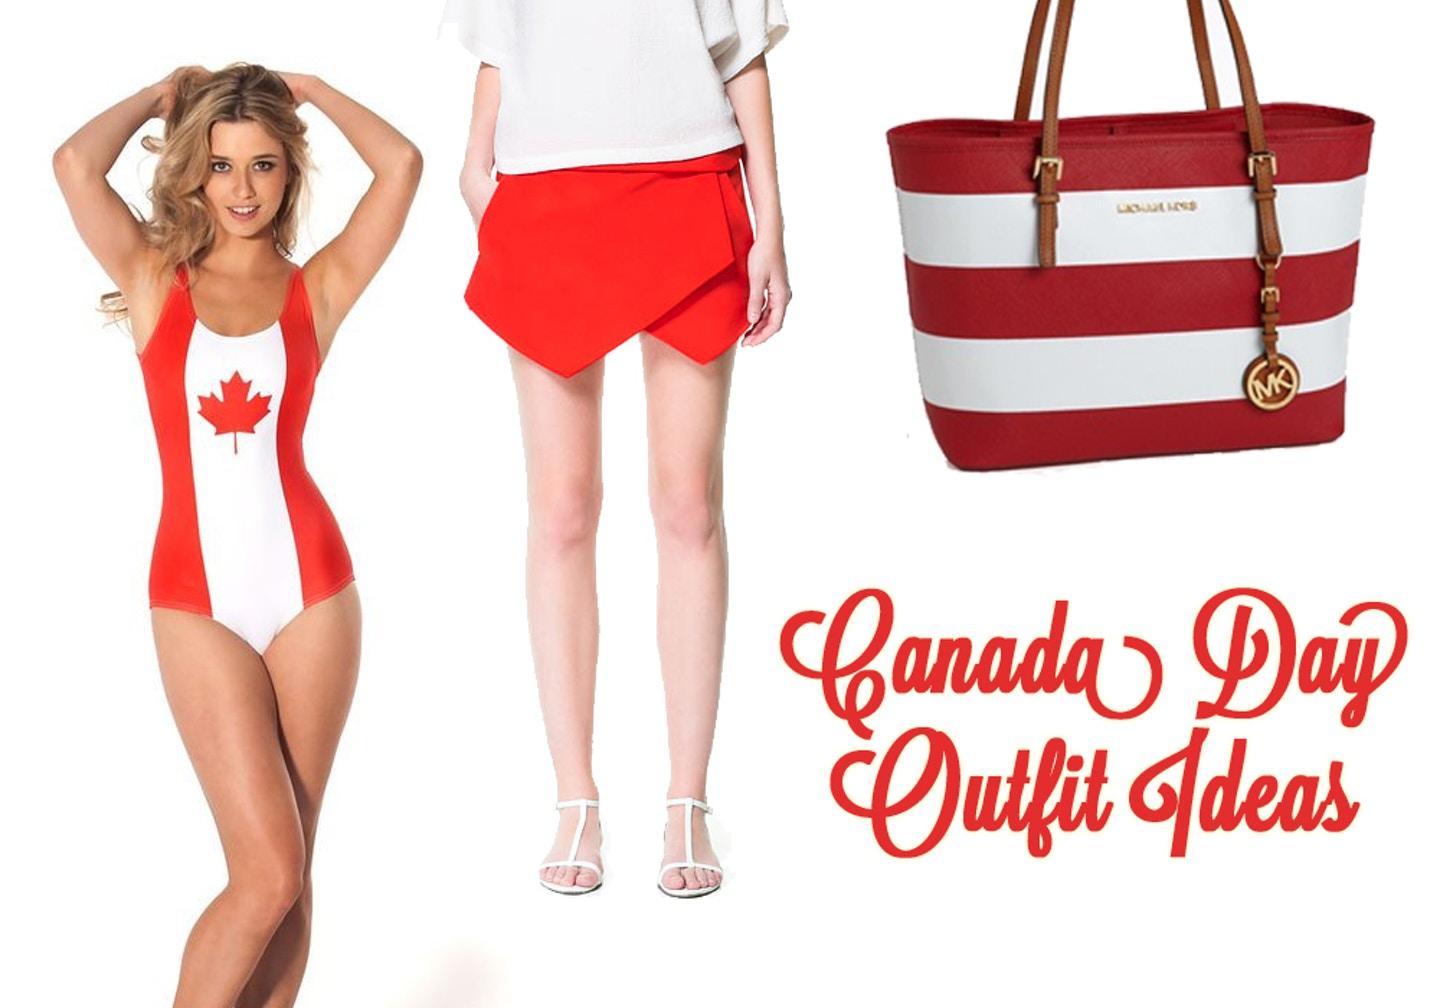 Cute Canada Day outfit ideas